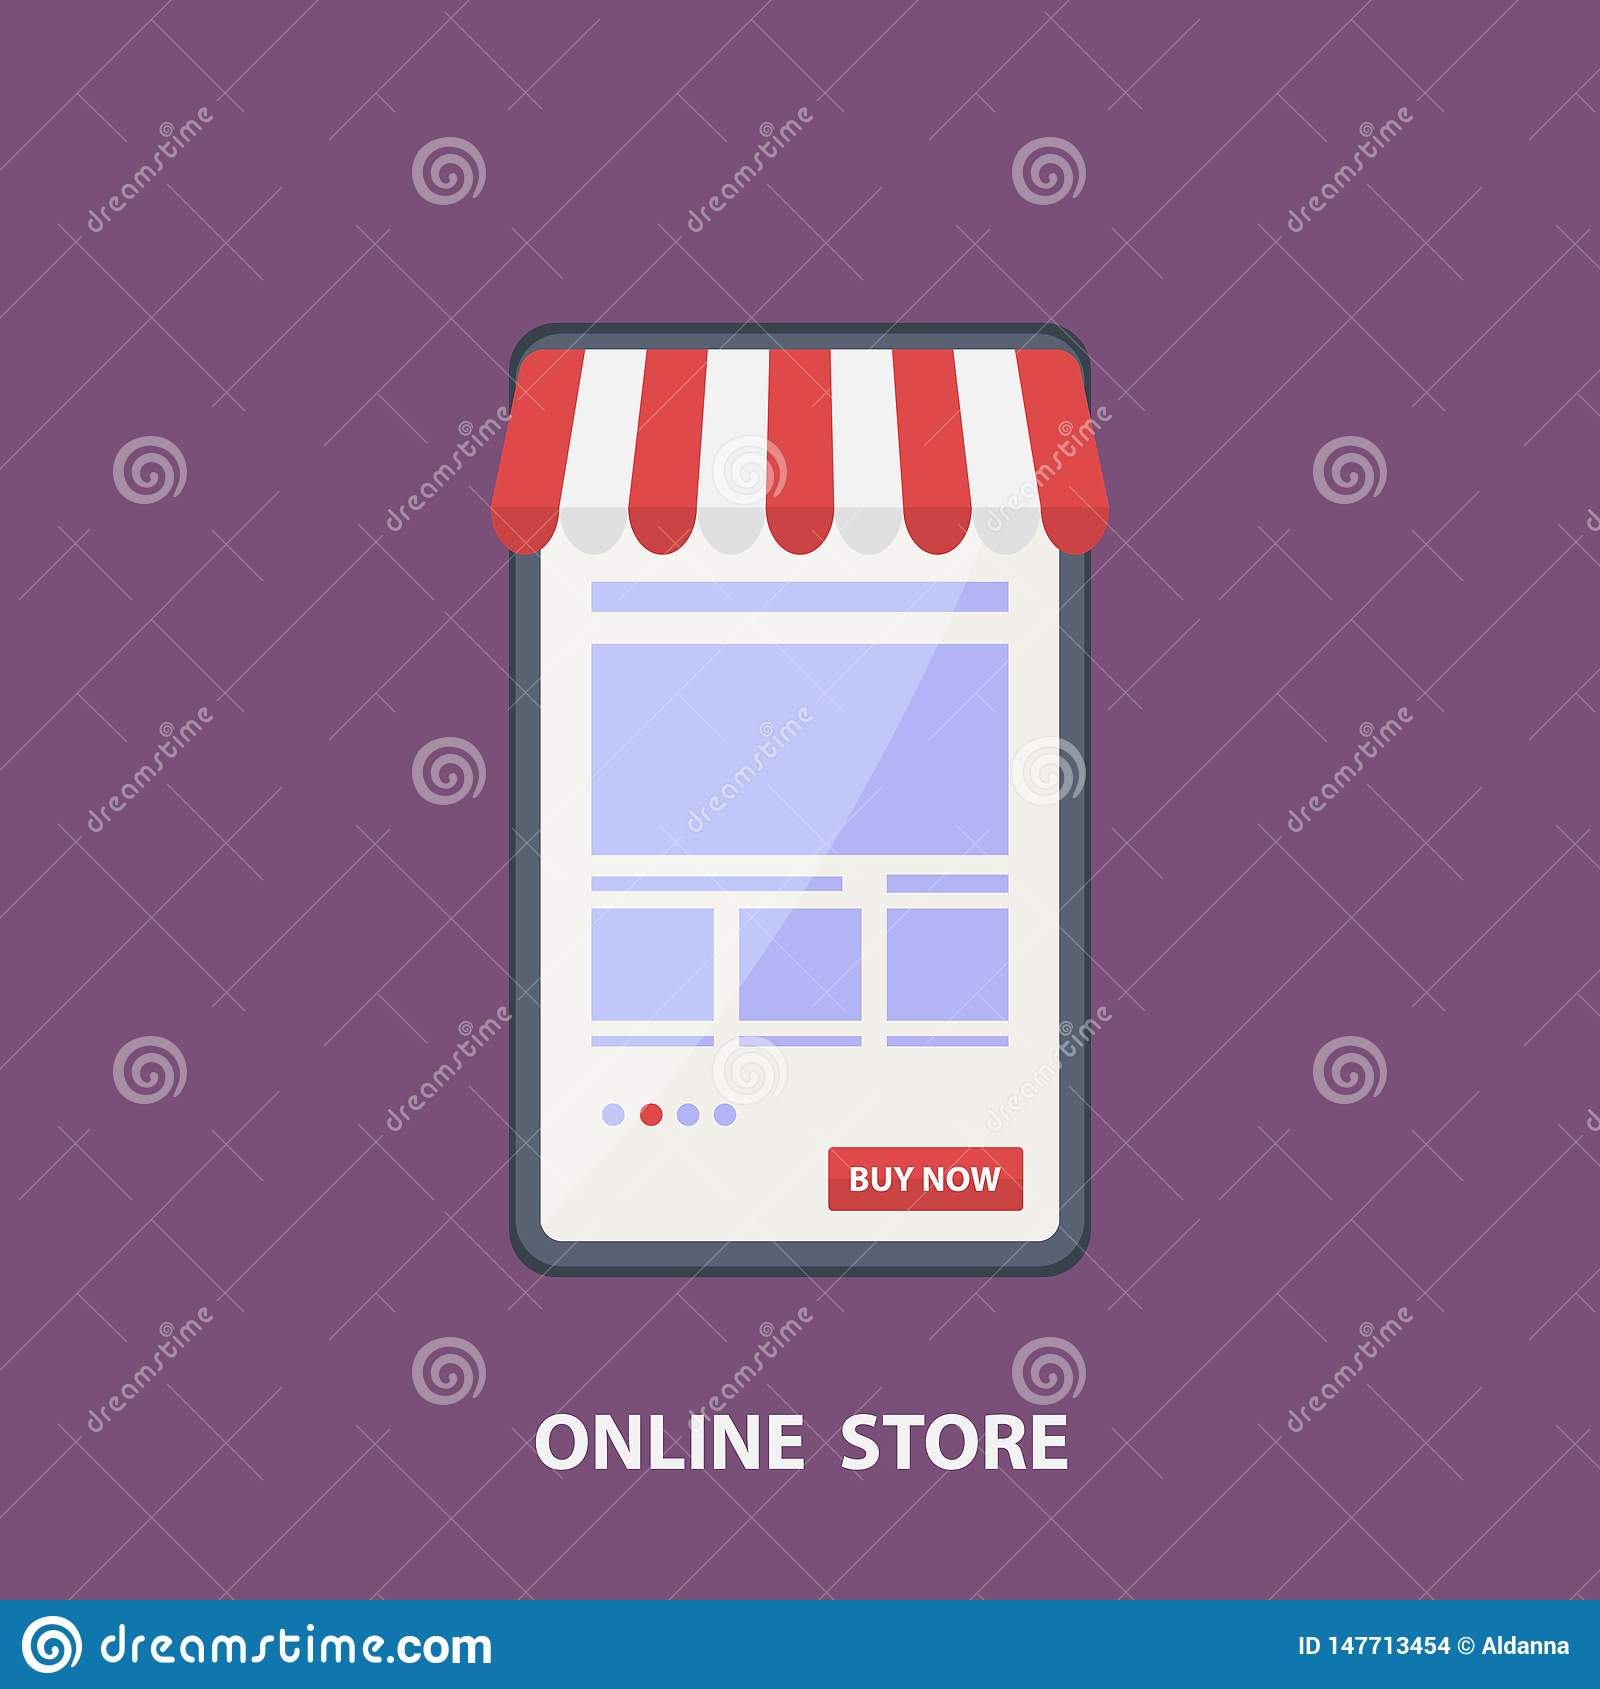 Poster Online Kaufen Phone Store.vector Flat Design Shopping Concept,buying Online And E-commerce Poster,online Shop Stock Vector - Illustration Of Order, Graphic: 147713454